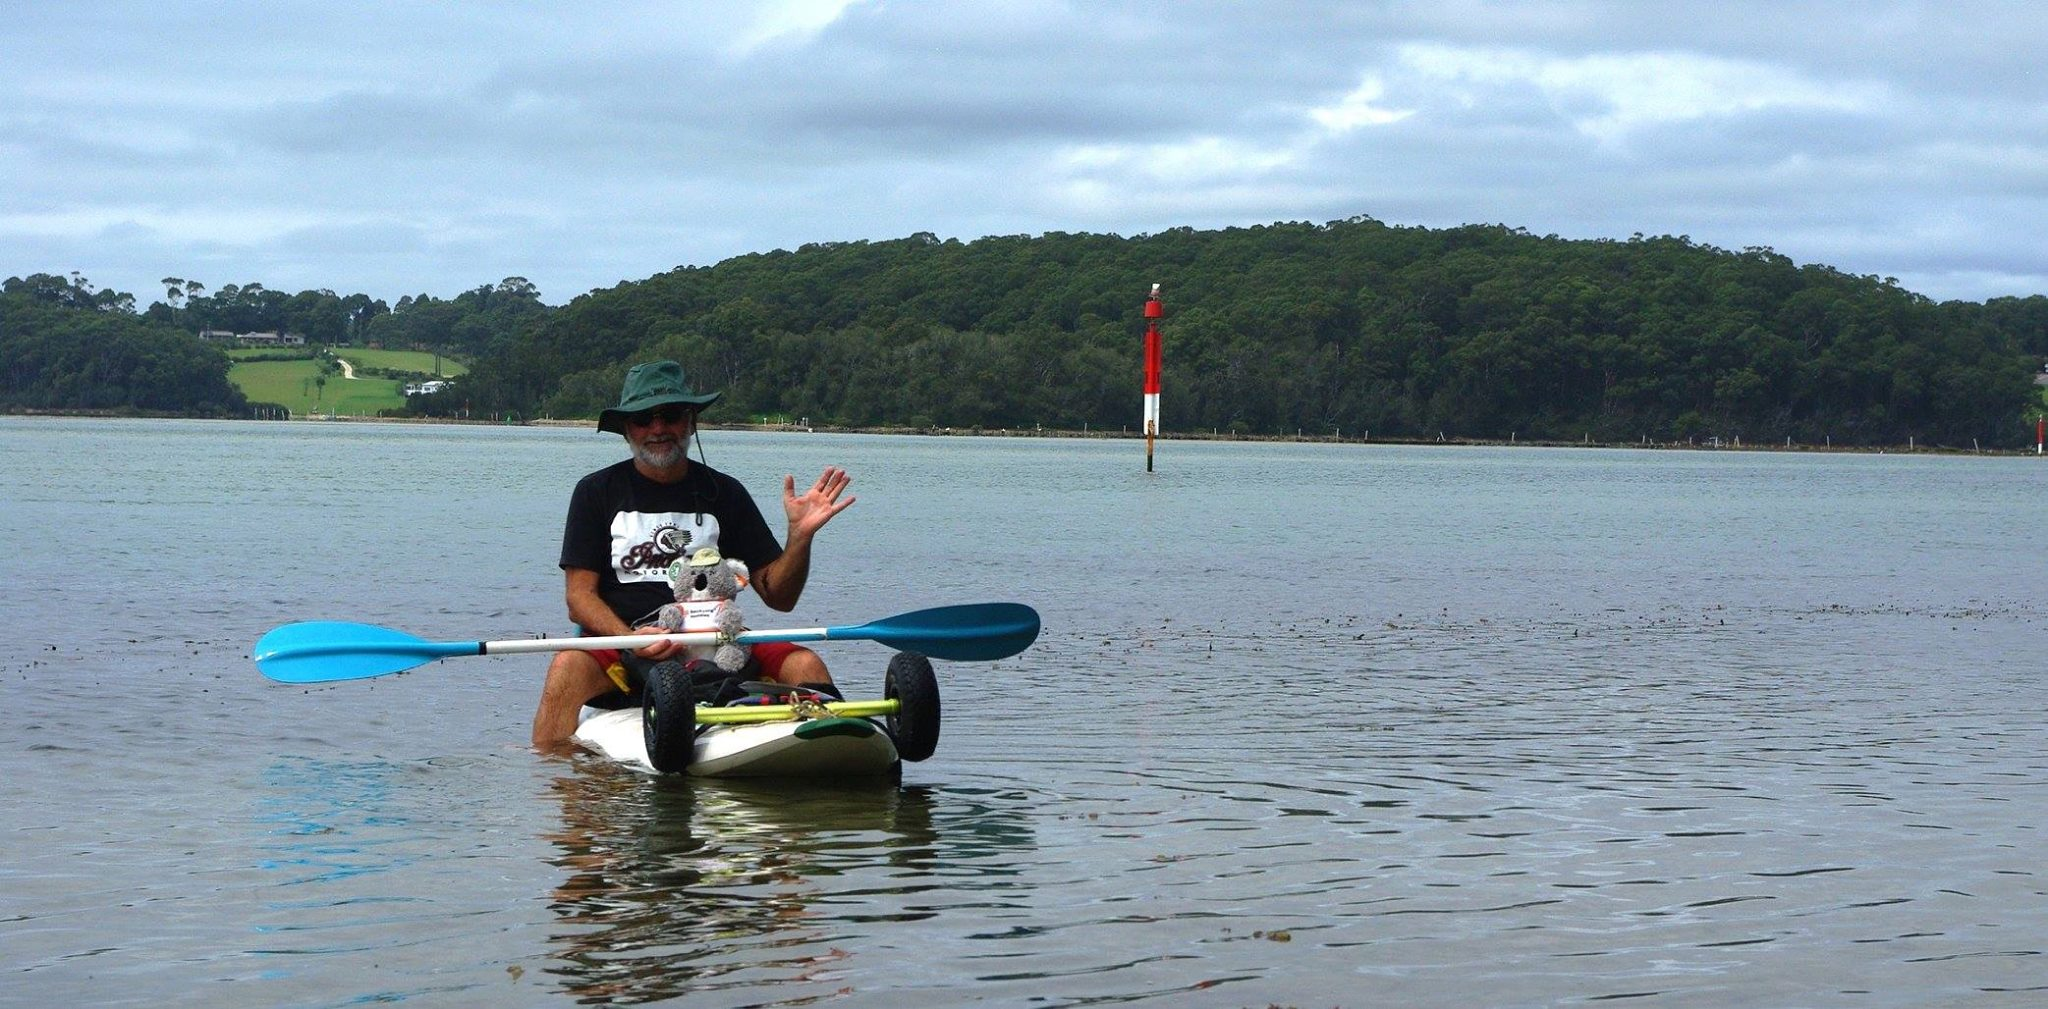 KB also lent a hand to Nurk kayaking on Wagonga Inlet.